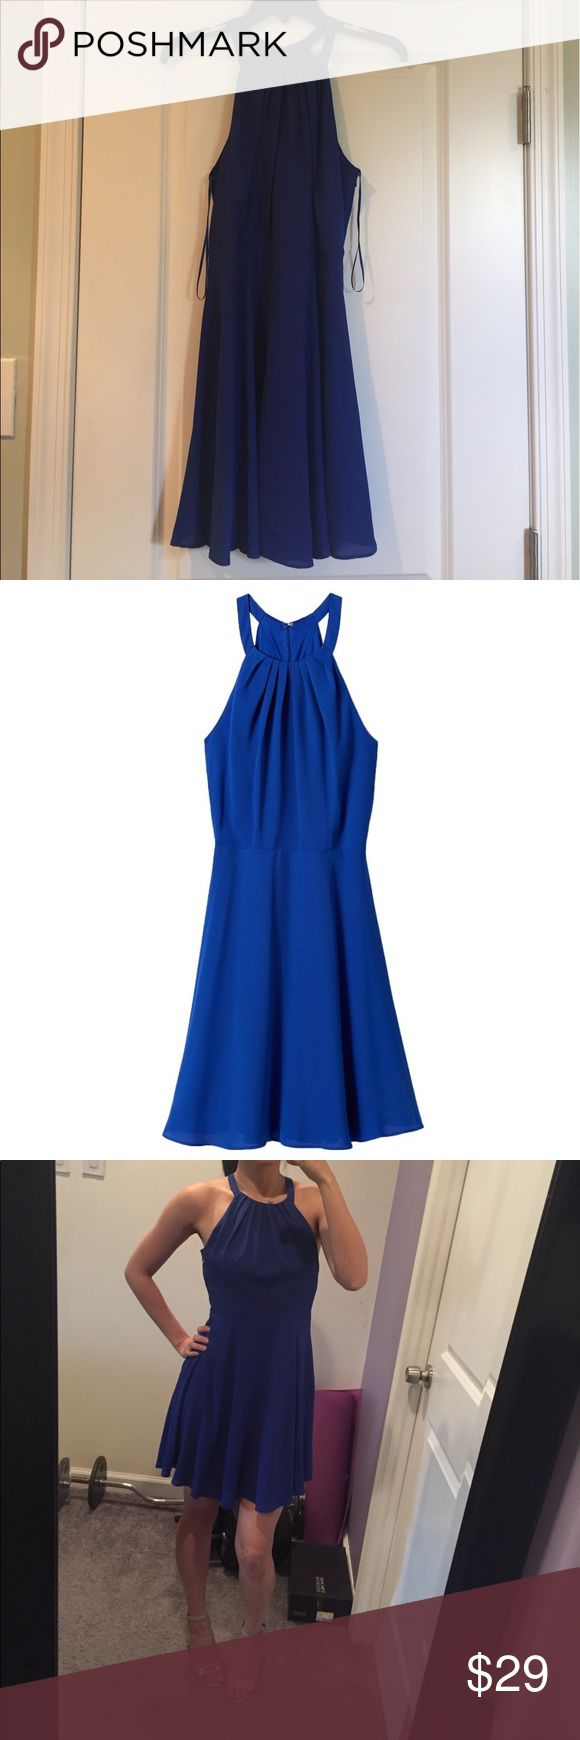 Express fit and flare halter dress Worn once. Like new. Royal blue color. Light crepe fabric, soft pleating and a flaring skirt give this bright blue halter dress lovely, rippling movement, as silky lining keeps you feeling luxe.  Modified halter neck, crisscross back w/ keyhole effect Sleeveless, hidden side zipper Pleated bodice, seamed waist Fully lined bodice and skirt, hits above the knee Polyester Machine wash Express Dresses Mini